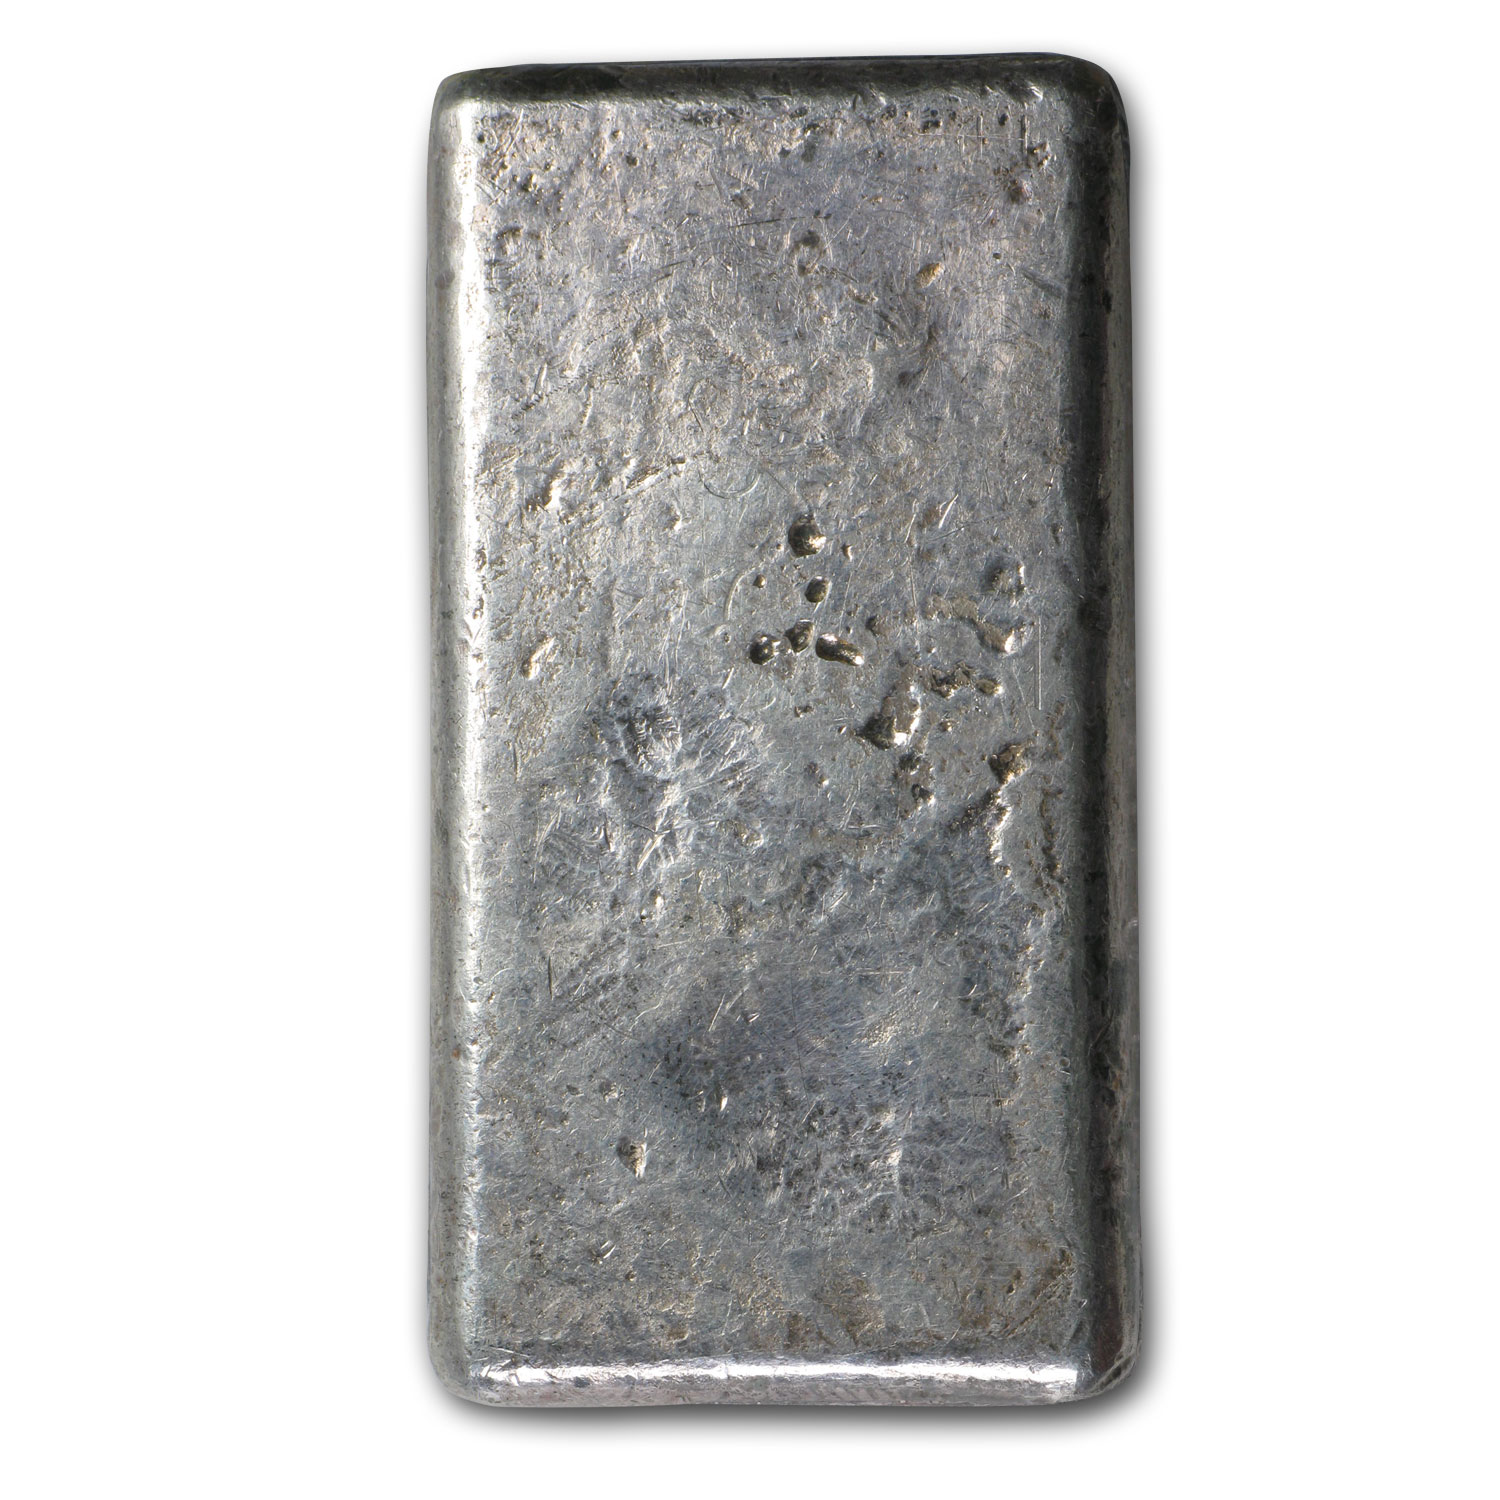 5 oz Silver Bars - Johnson Matthey (Poured/Flat)